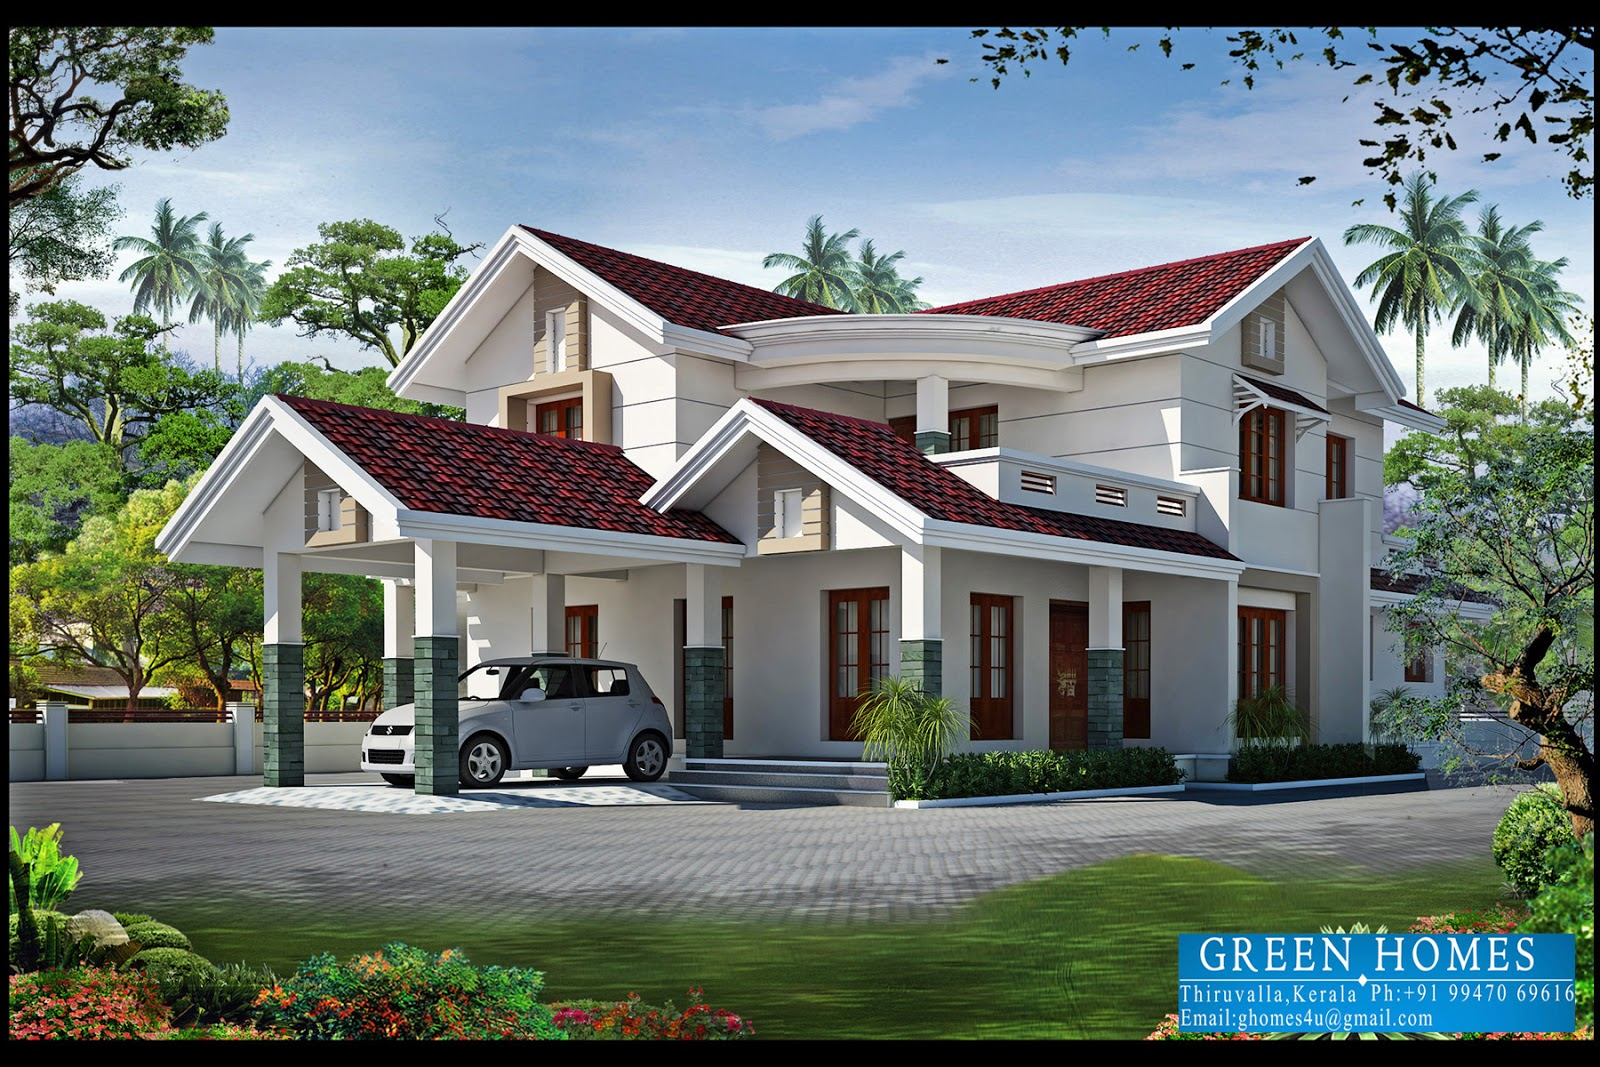 Green homes 4bhk kerala home design 2550 for Model house photos in indian